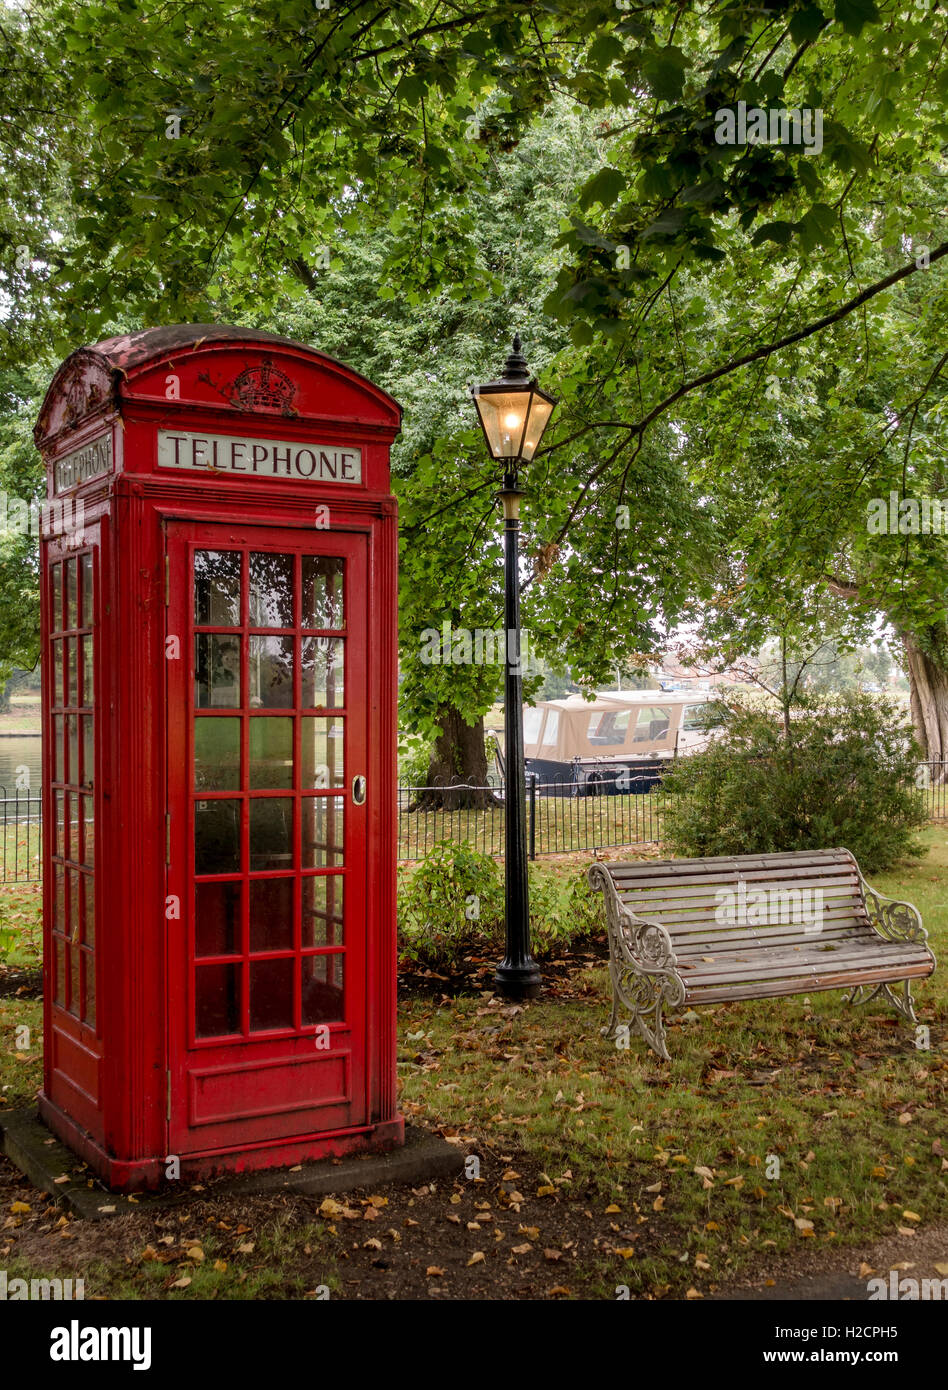 Pre-war 1930's traditional British red telephone box with old lamp post and bench - Stock Image